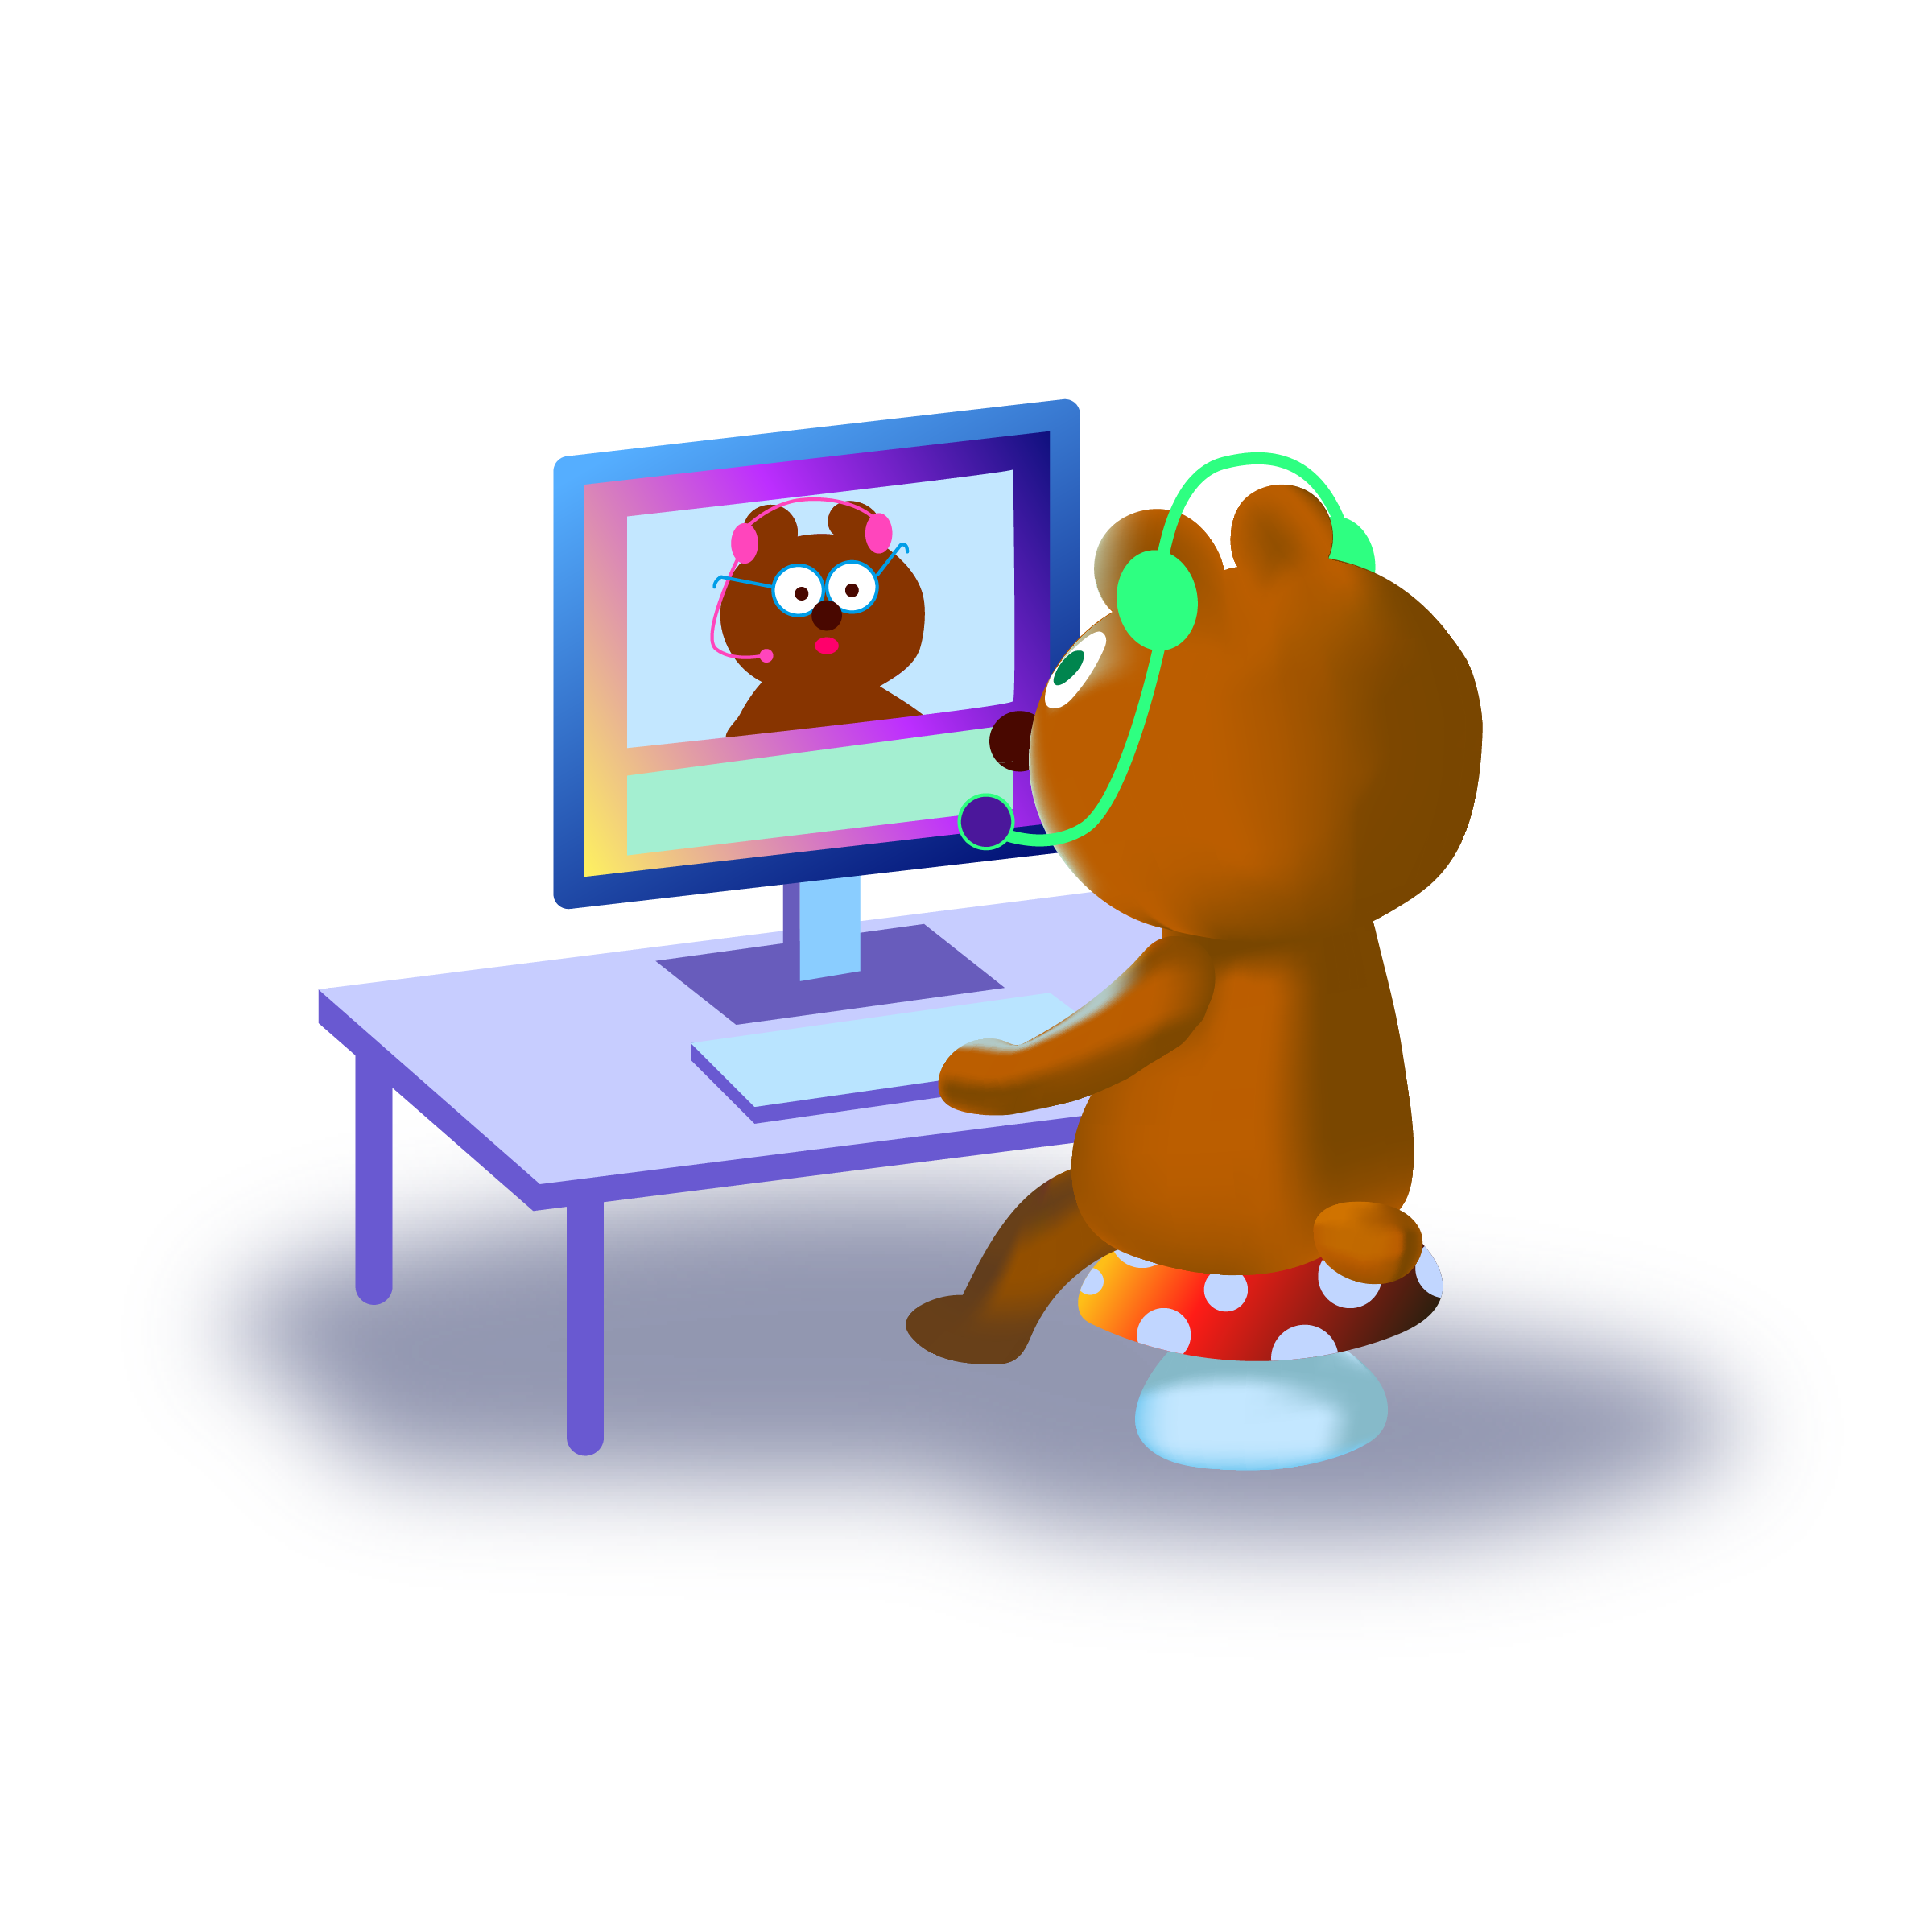 Millie the bear at a computer with a headset, using Zoom with another bear